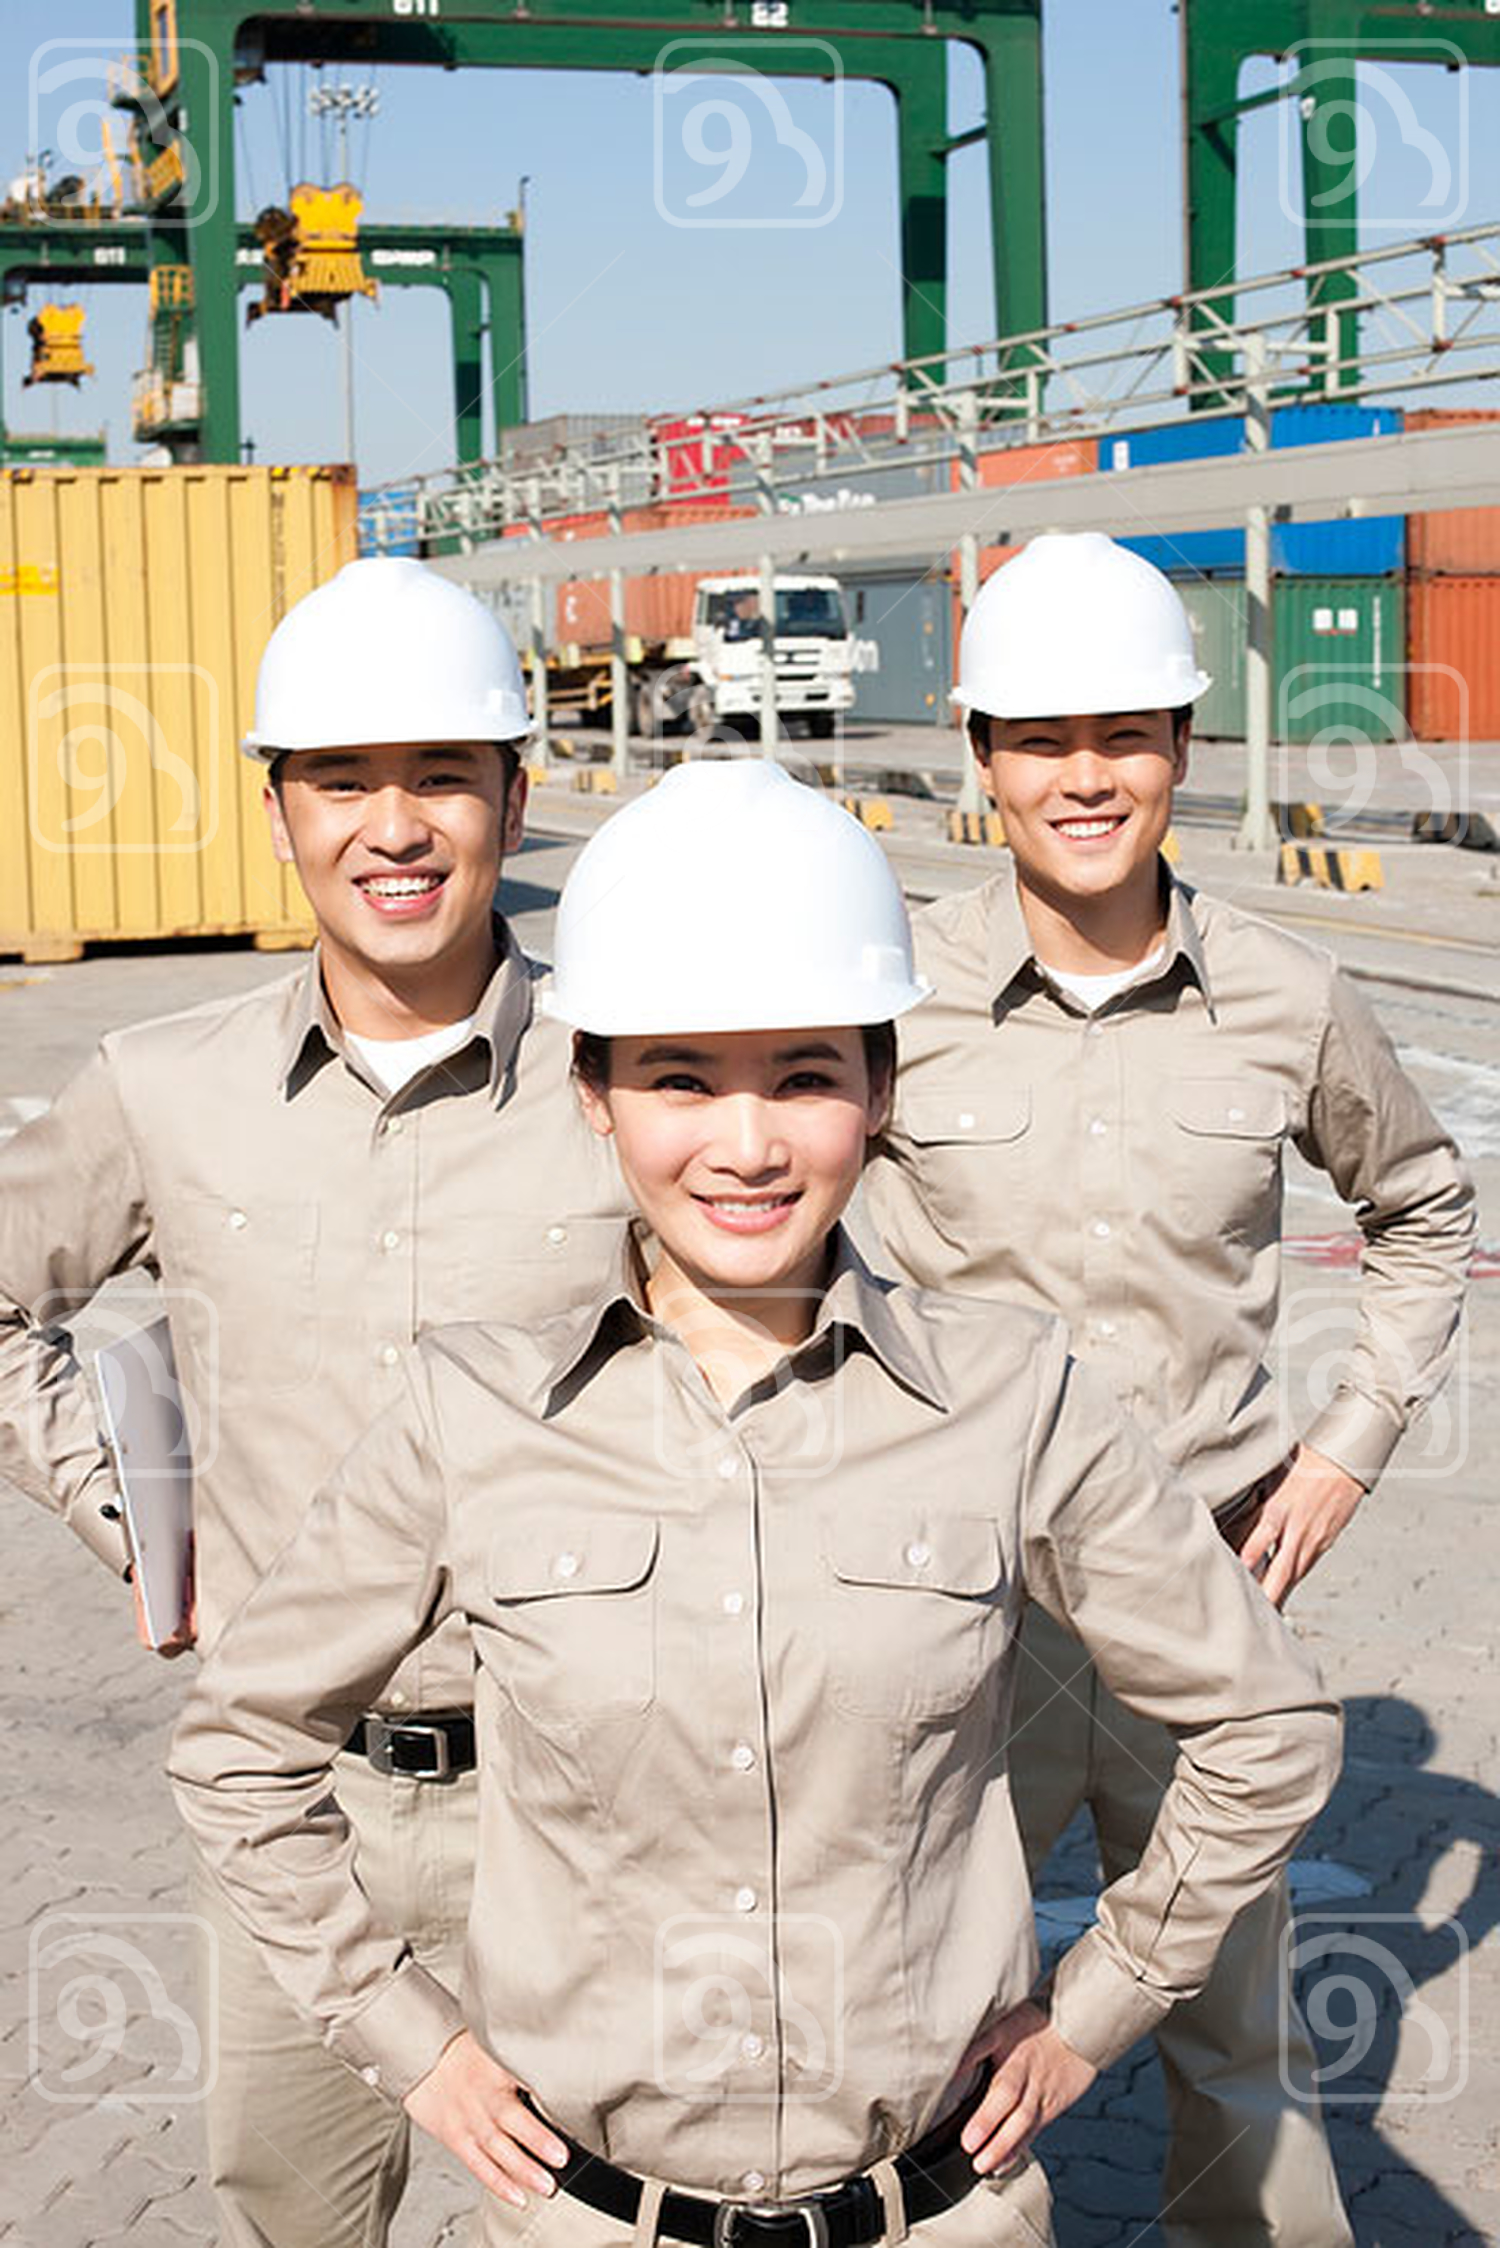 Chinese shipping industry workers with hands on their hips